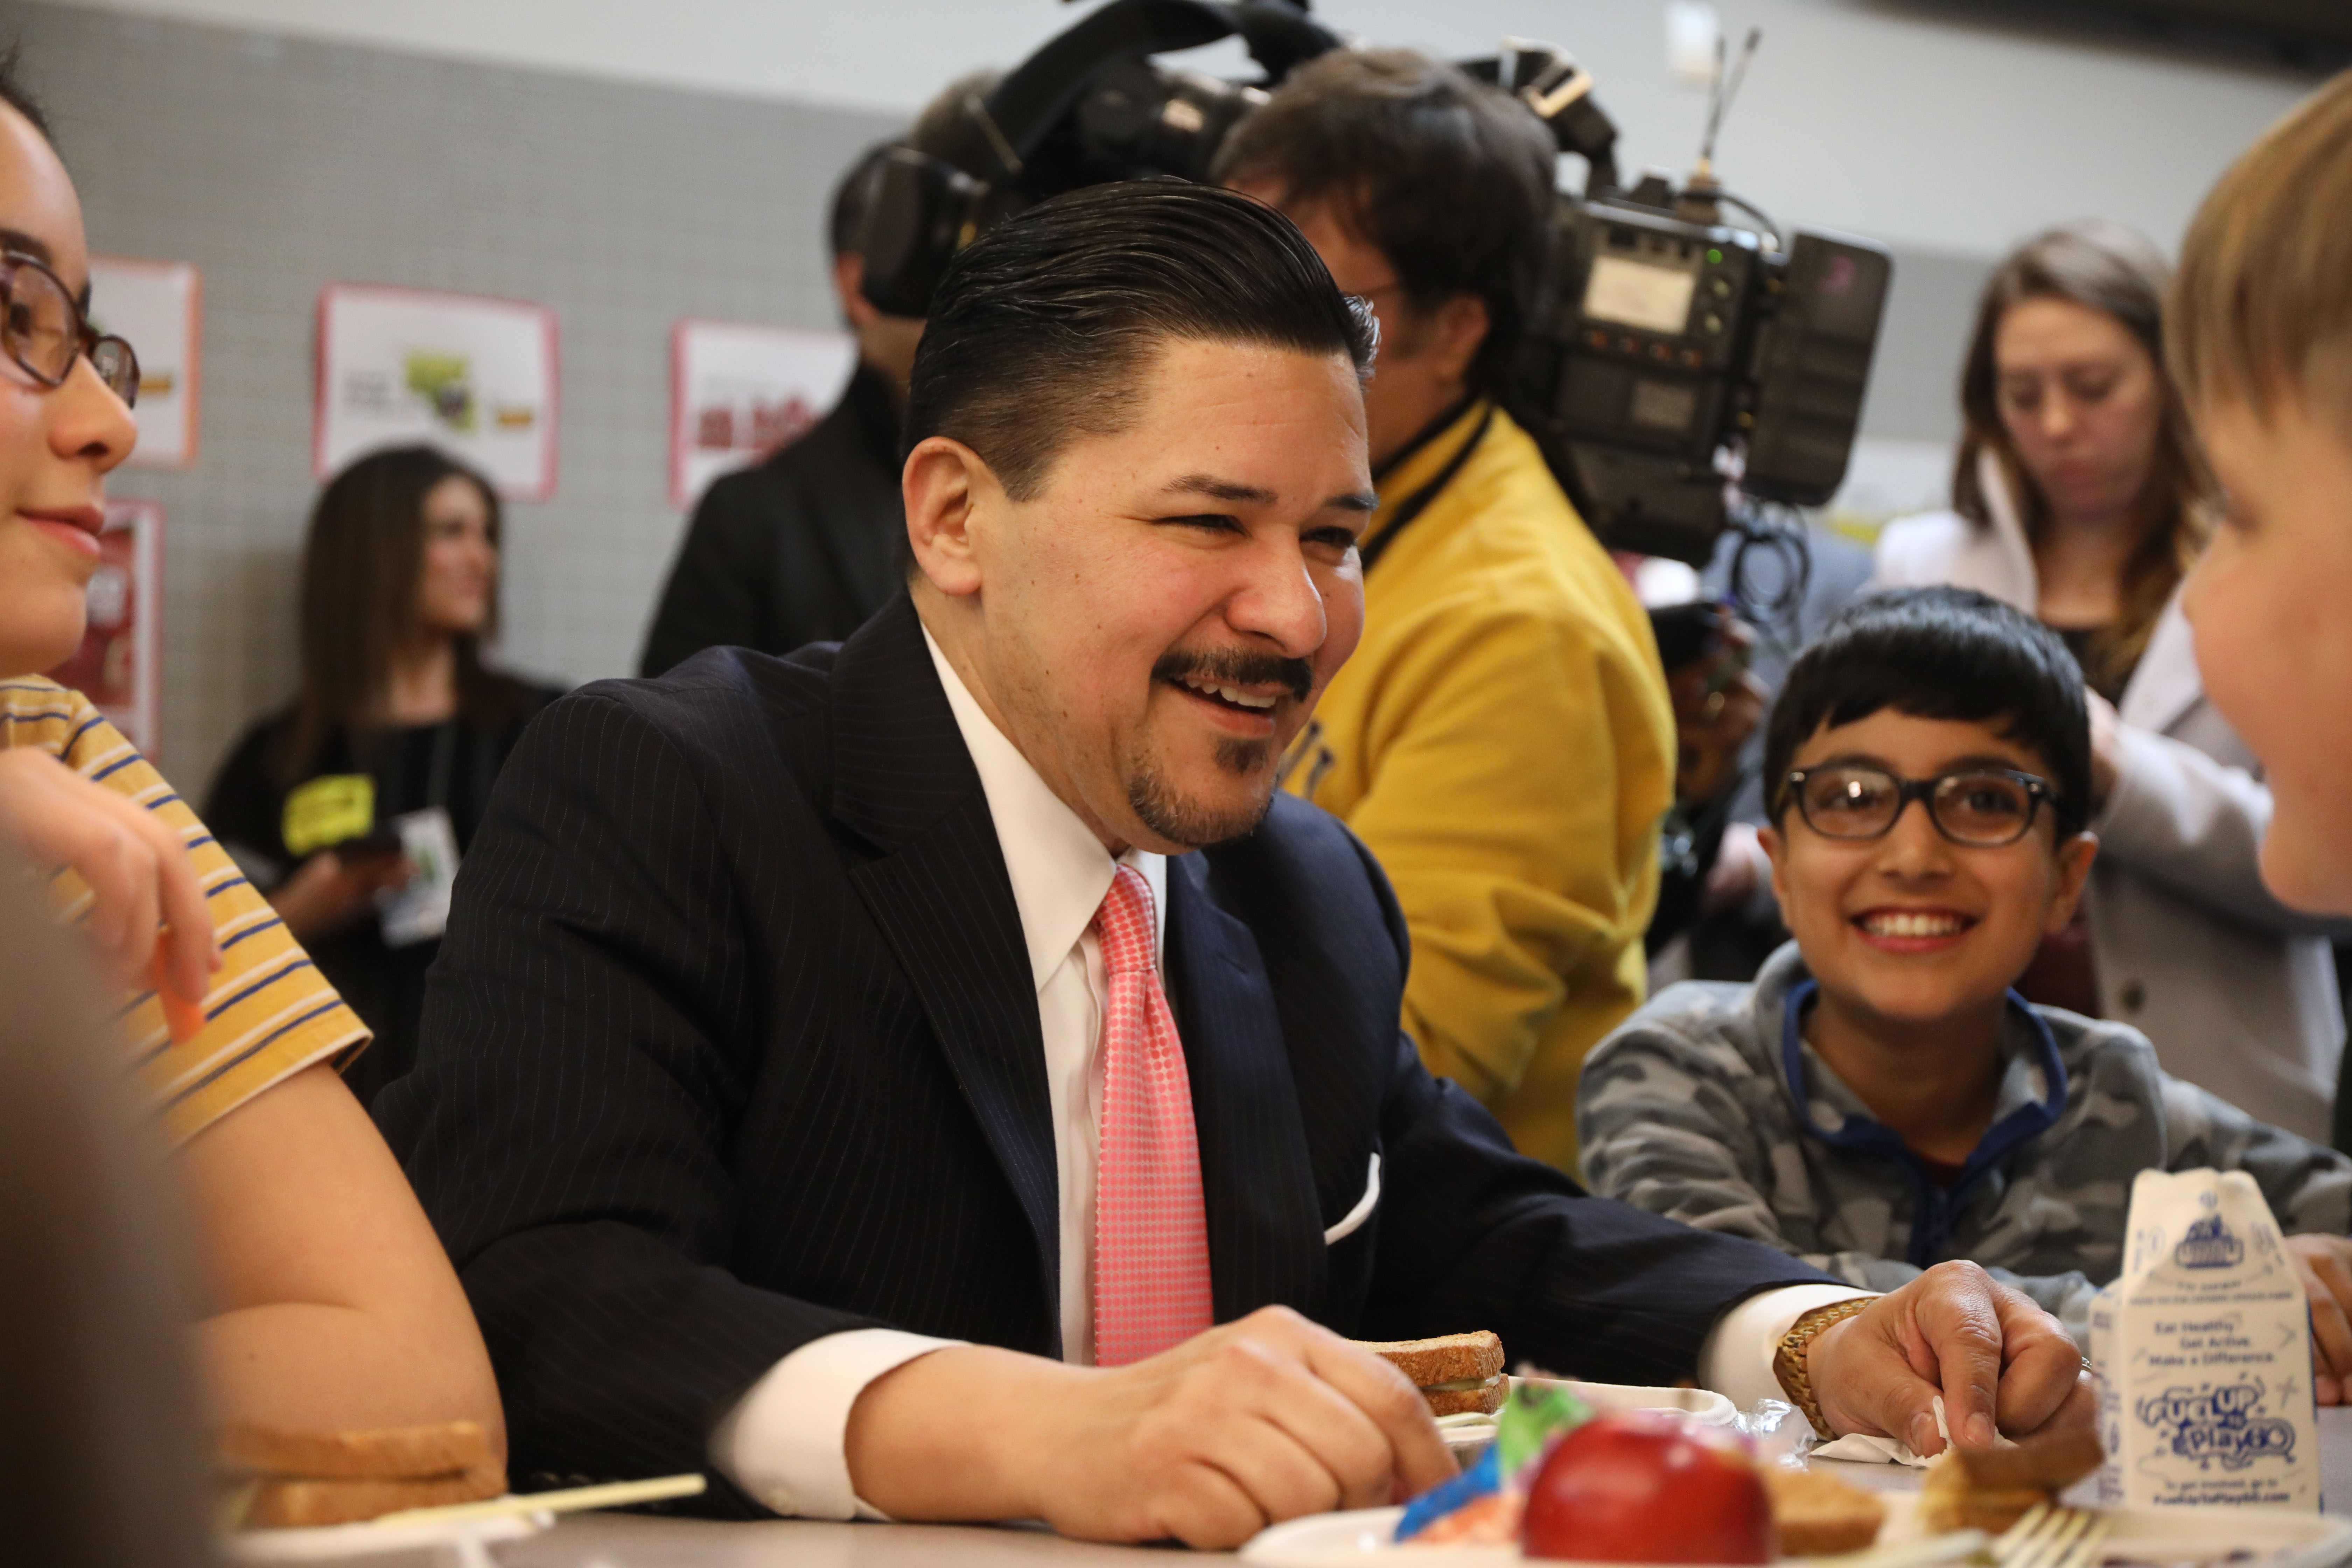 NEW YORK, NEW YORK - MARCH 11: Schools Chancellor Richard Carranza joins New York Mayor Bill de Blasio and school children for lunch at PS130, a Brooklyn public school, for an announcement about Meatless Monday's on March 11, 2019 in New York City. Citing healthy eating habits for children and the environmental impact of too much meat in our diet, Mayor de Blasio and Schools Chancellor Carranza will begin having all public school serve an all vegetarian menus on Mondays beginning in the 2019-2020 school year. (Photo by Spencer Platt/Getty Images)